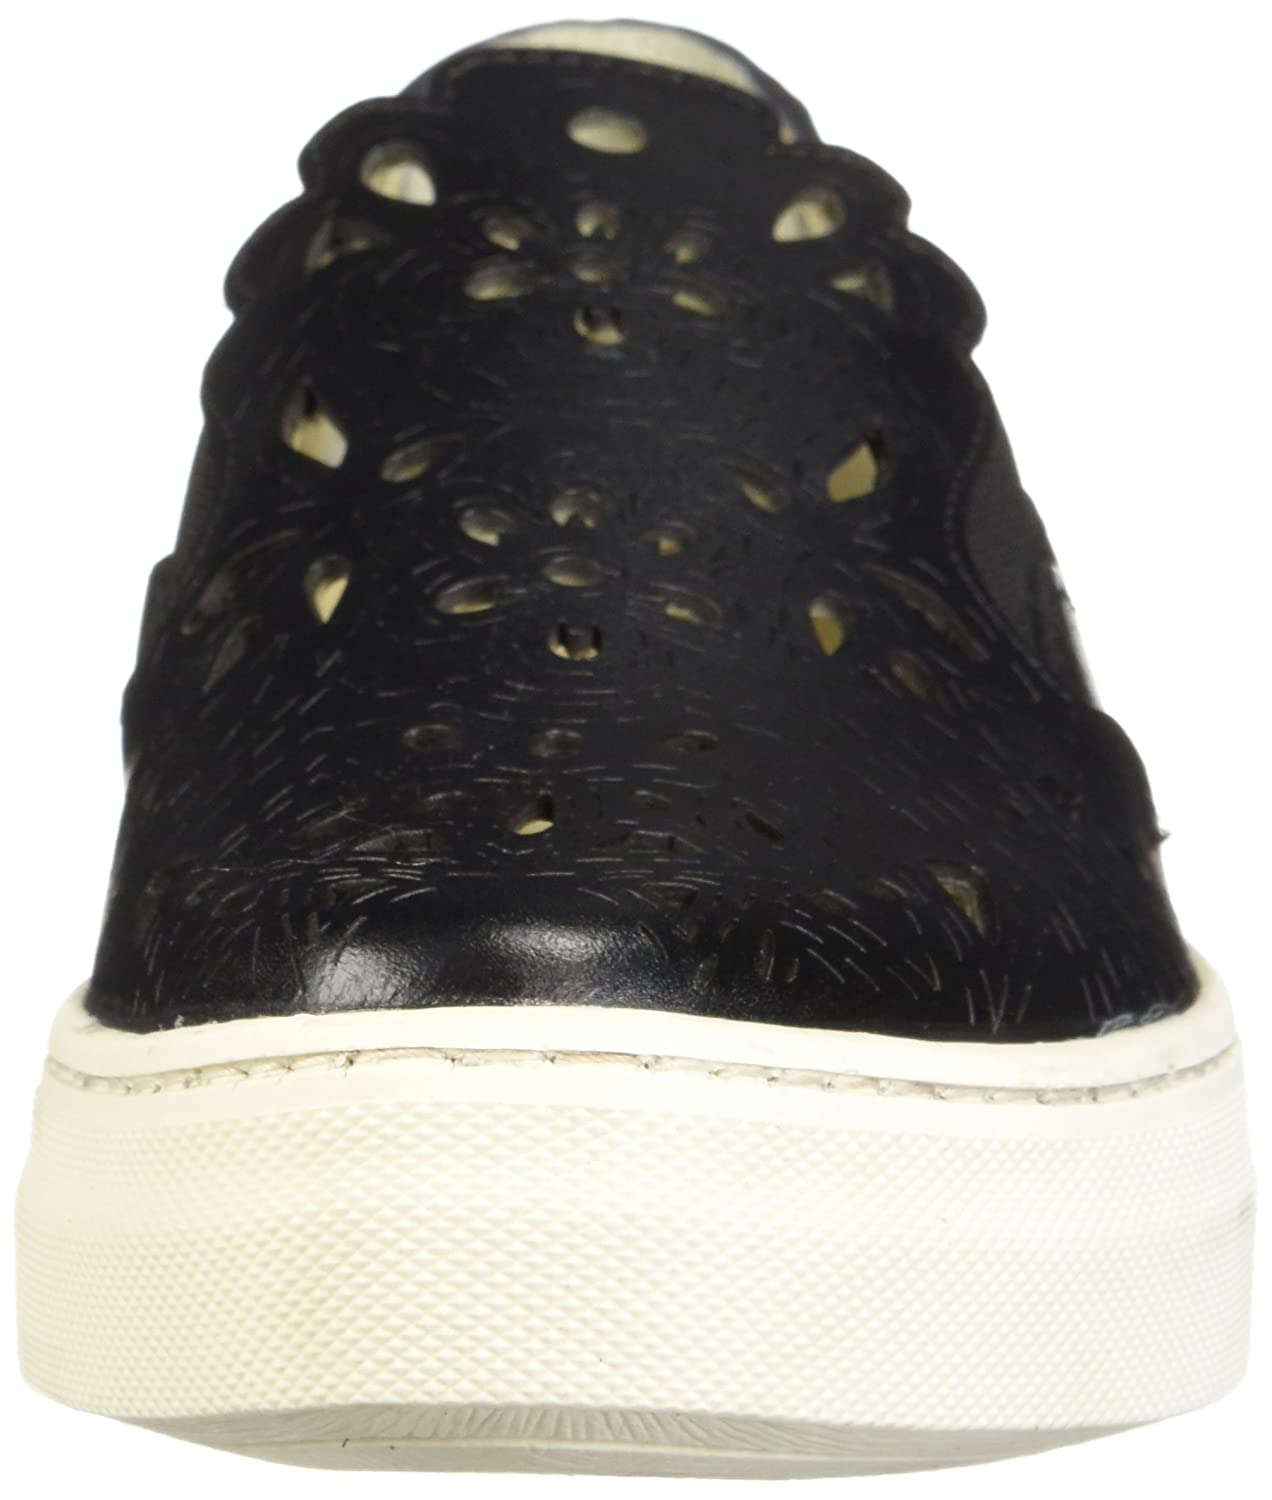 Seychelles Women's Even Better Sneaker B0761ZVB4X 9.5 B(M) US|Black